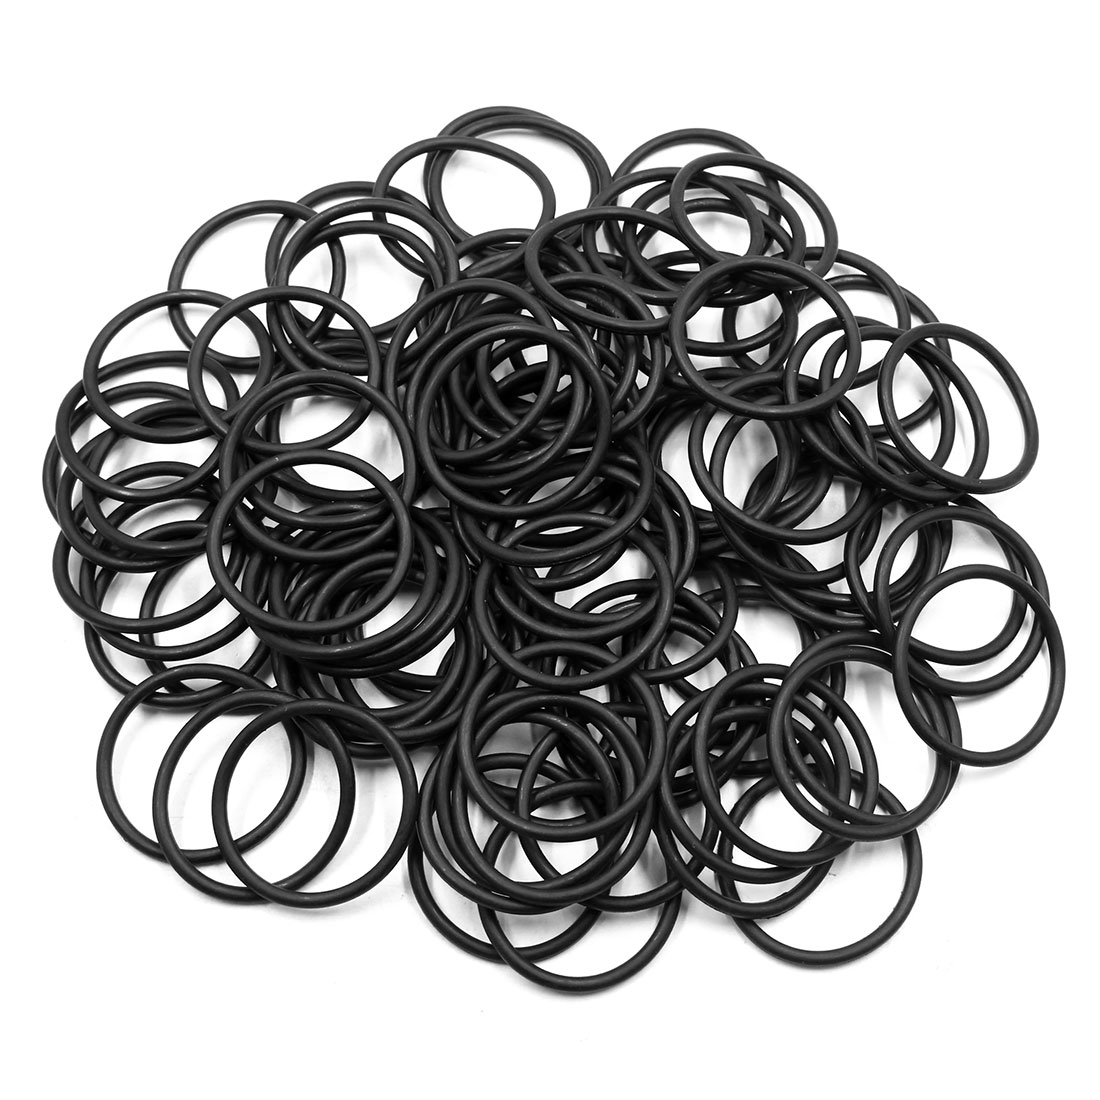 100pcs Black Universal Nitrile Rubber O-Ring Seals Gasket for Car 40 x 3.55mm